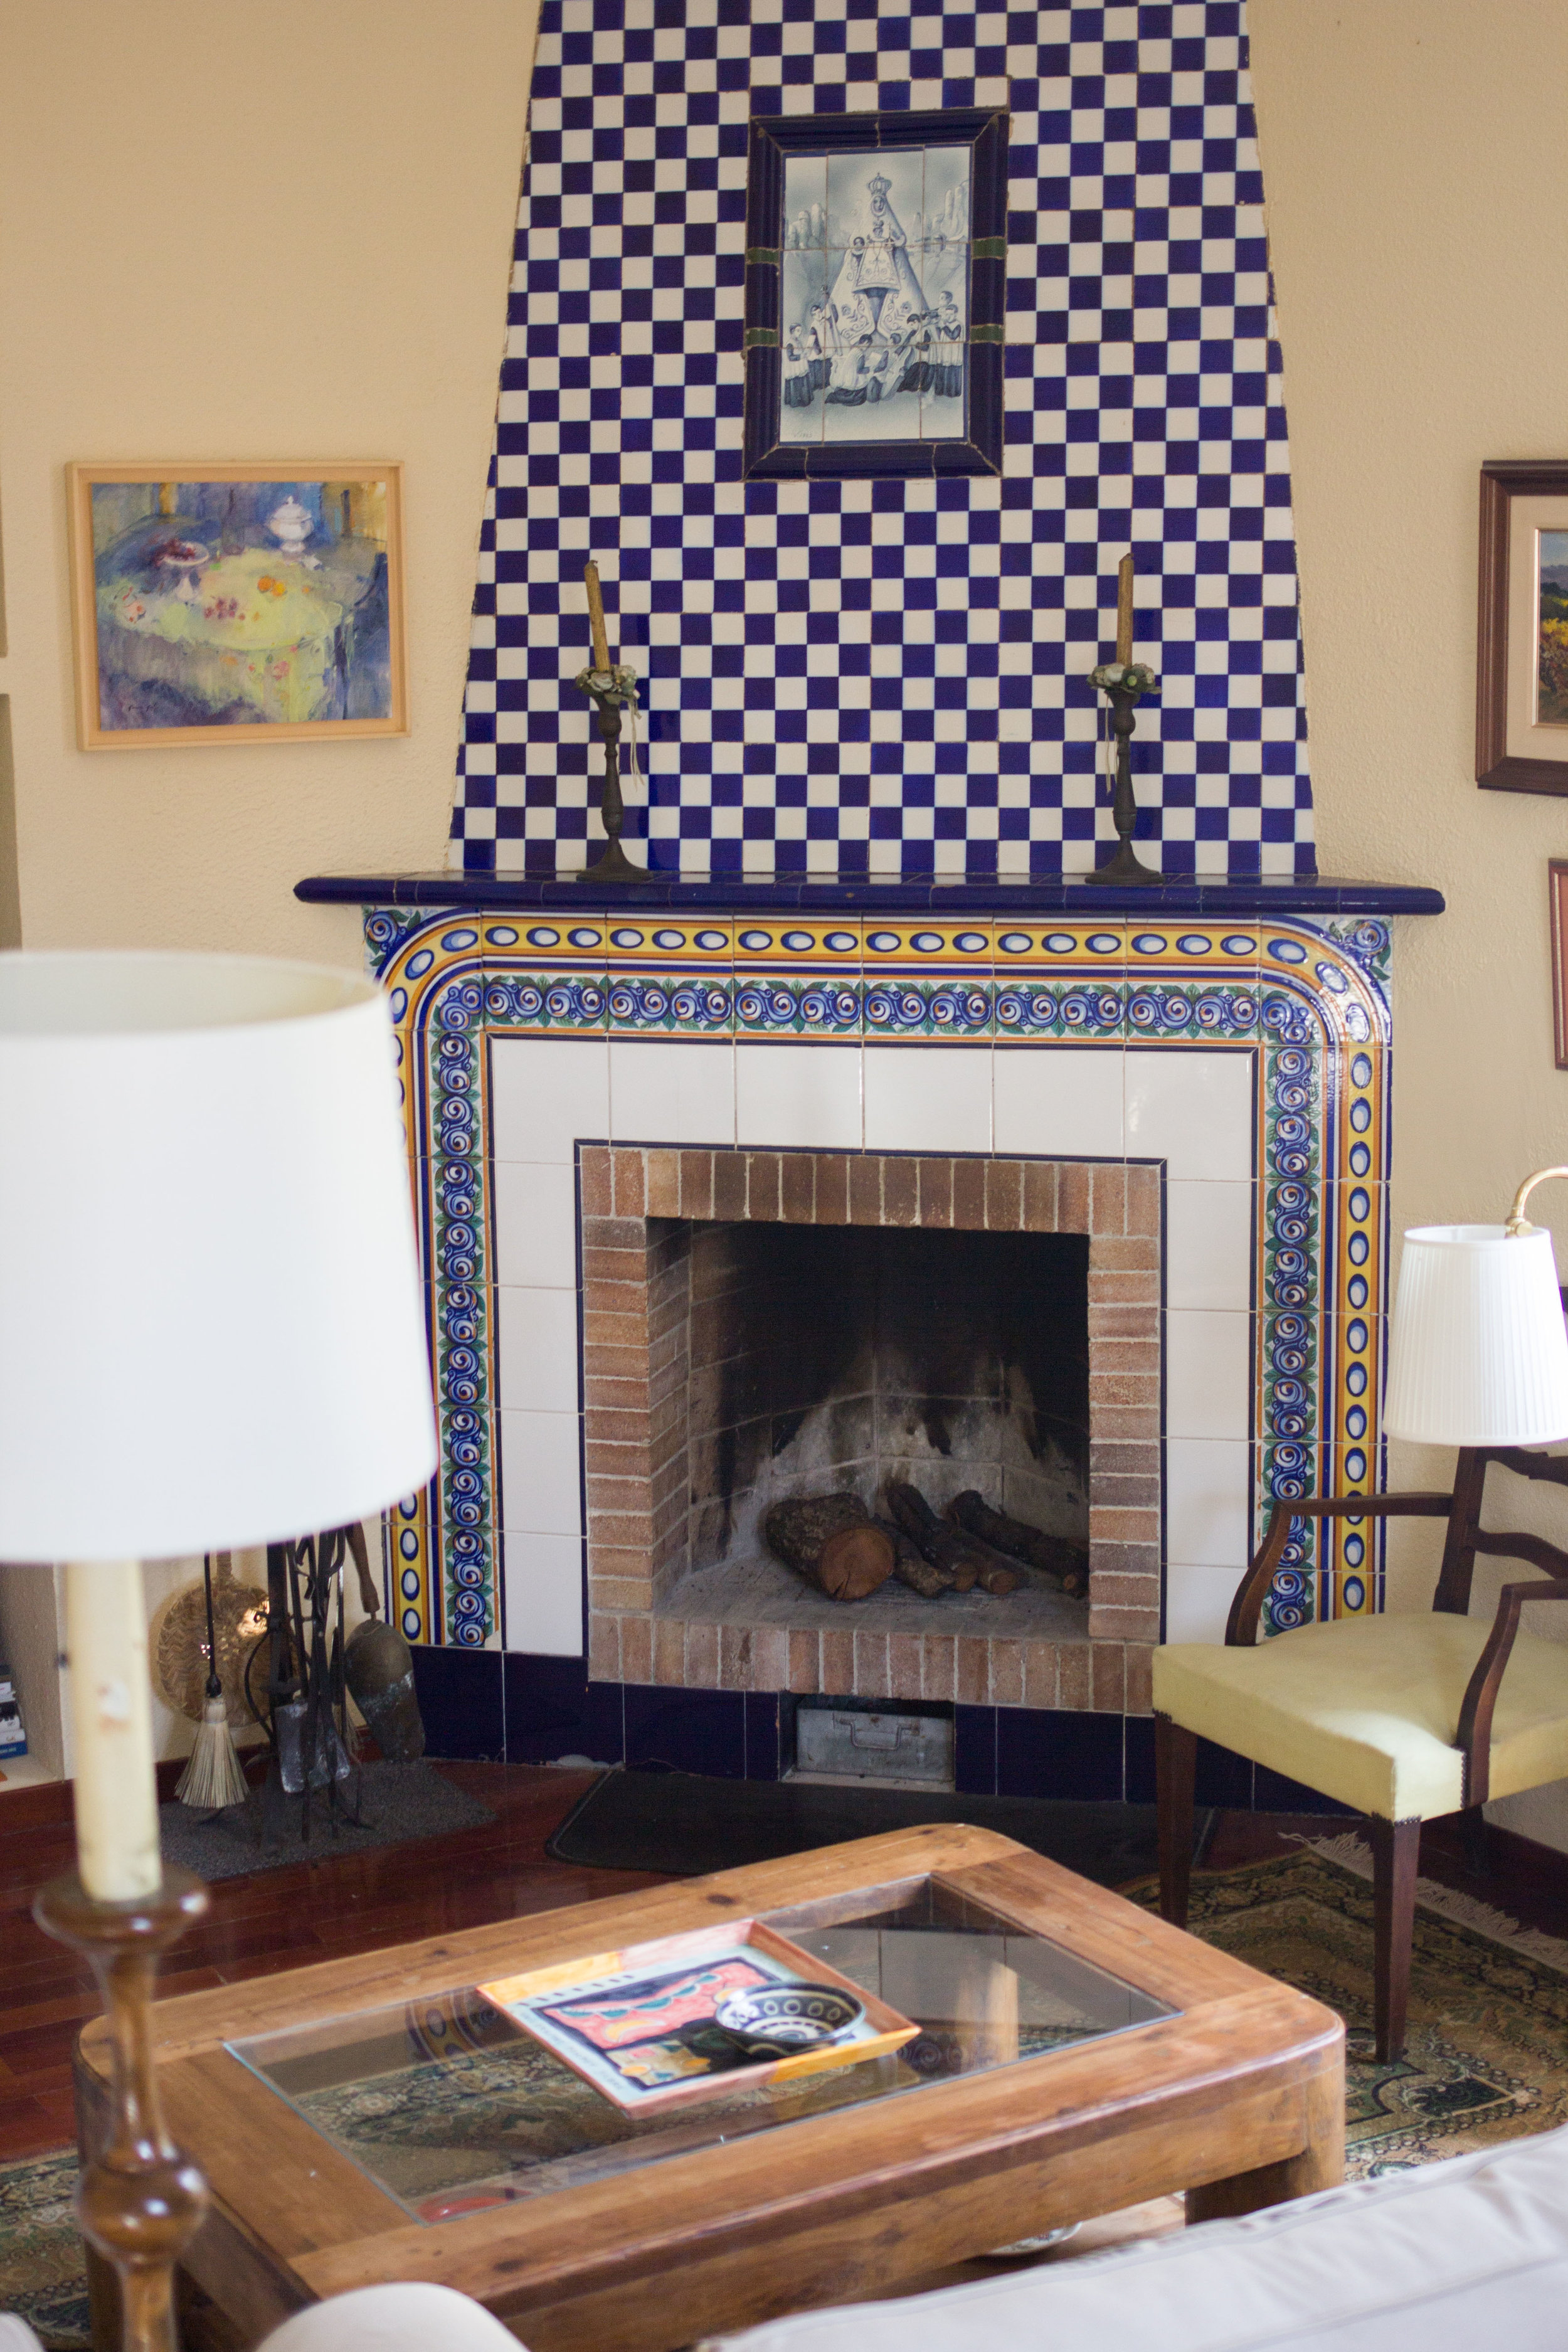 traditional Spanish painted porcelain fireplace in the living room